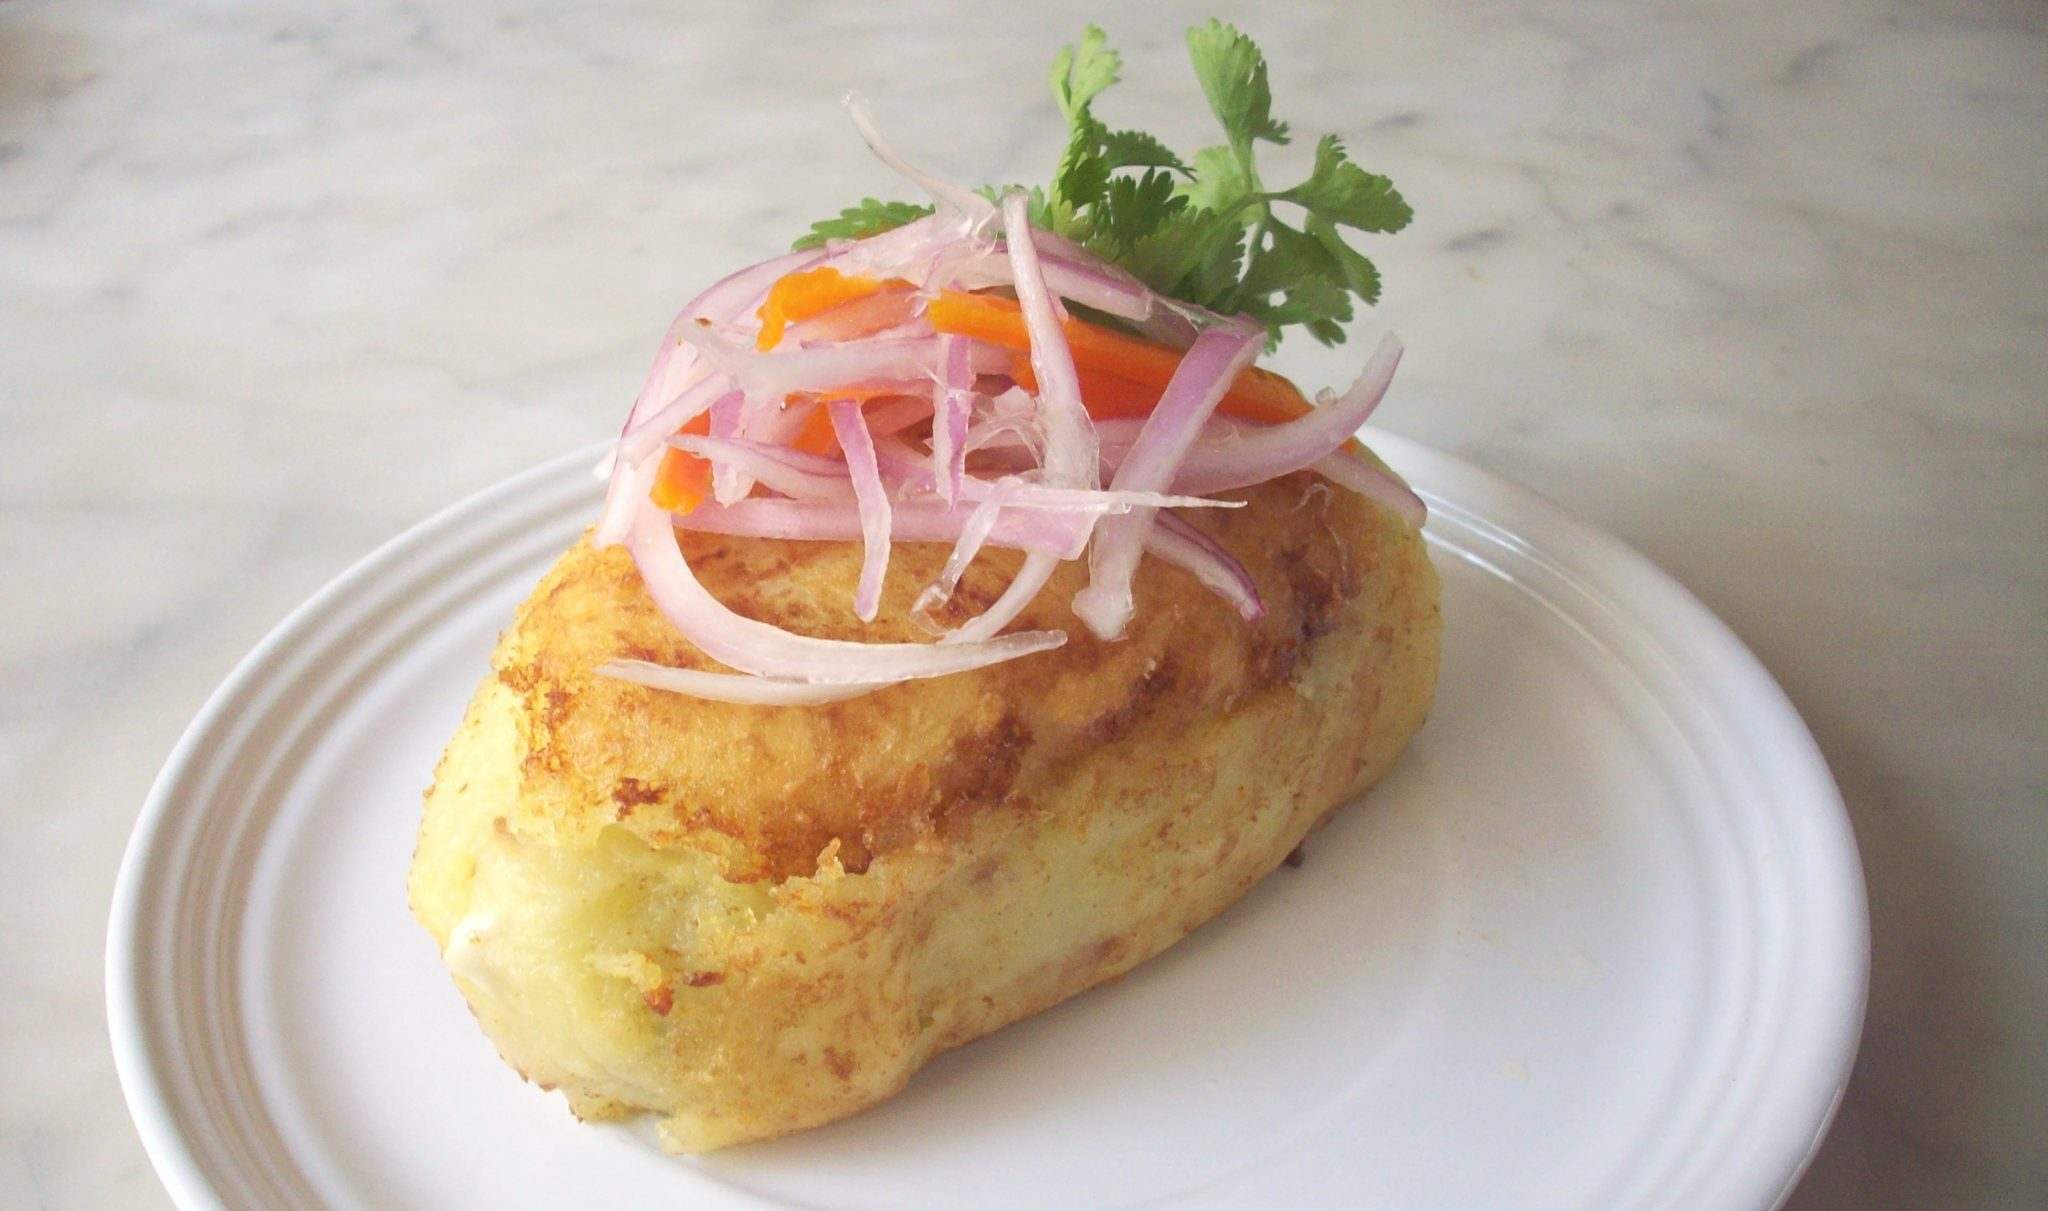 Papa rellena, a thousand and one stuffings | PERU DELIGHTS